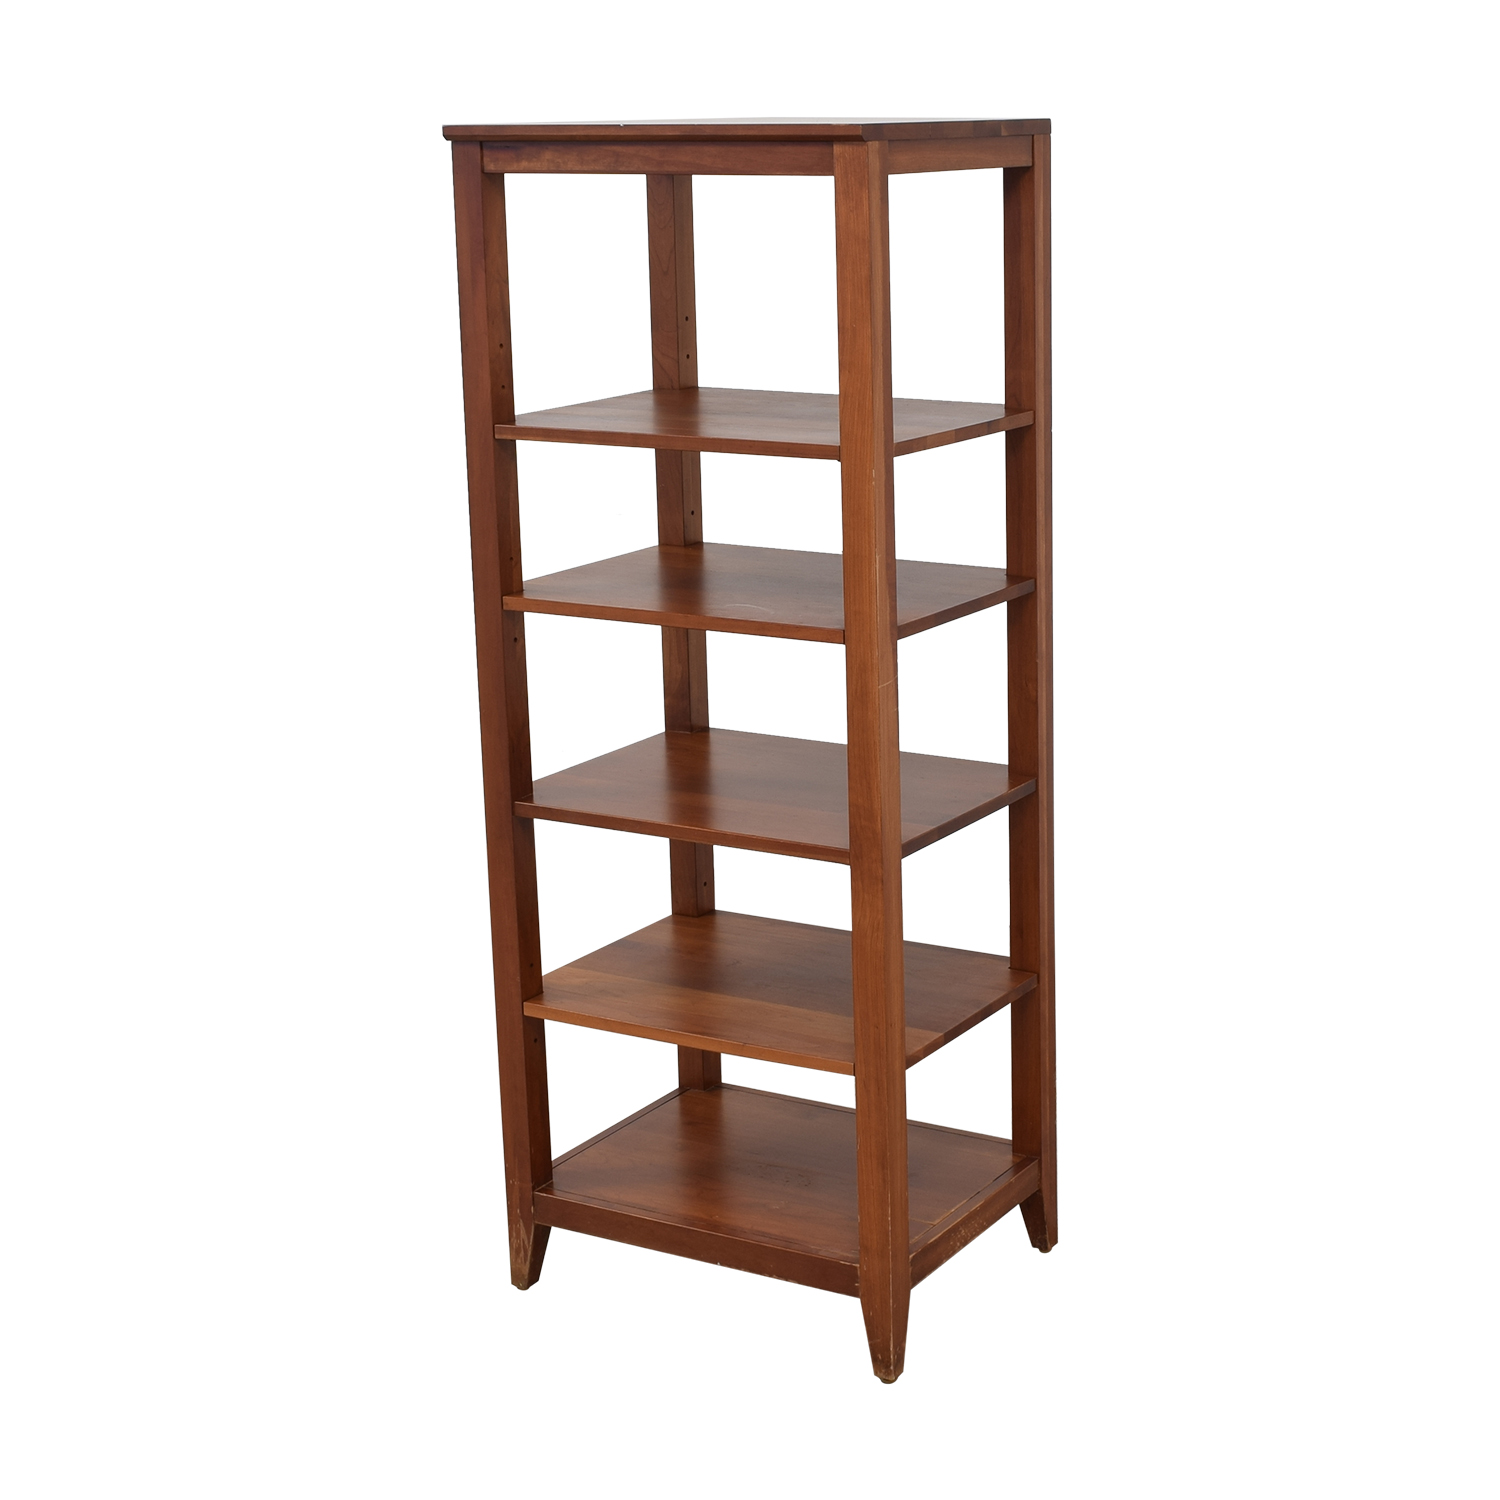 Ethan Allen Ethan Allen Tower Shelf dimensions